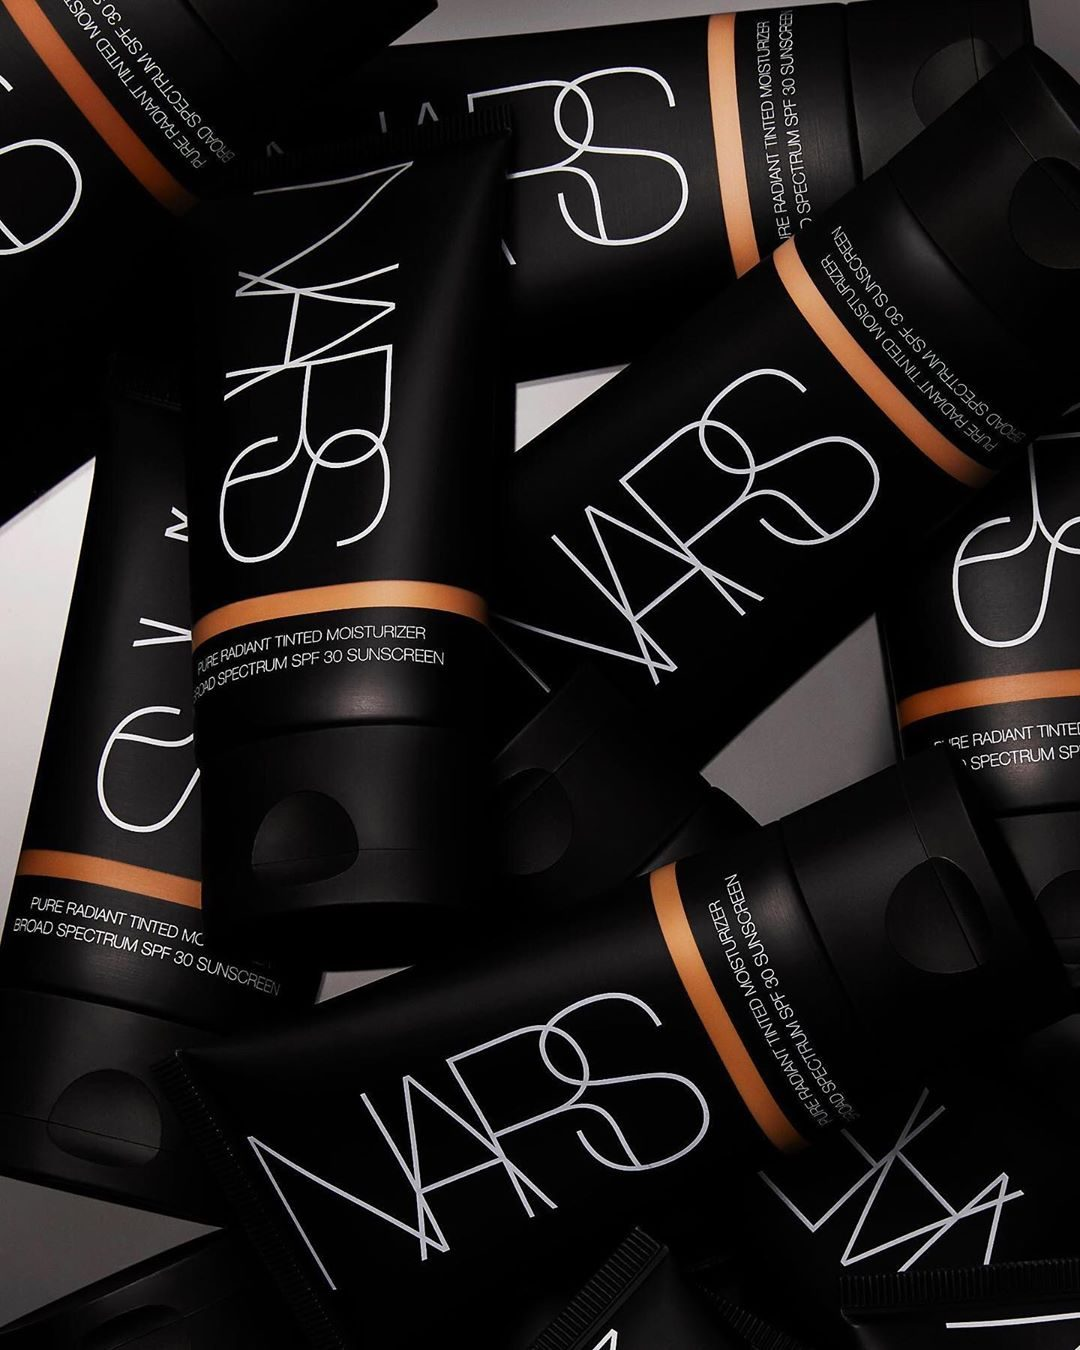 When the days get warmer, foundation gets lighter. Pure Radiant Tinted Moisturizer hydrates, brightens and protects with lightweight, buildable coverage and SPF 30.